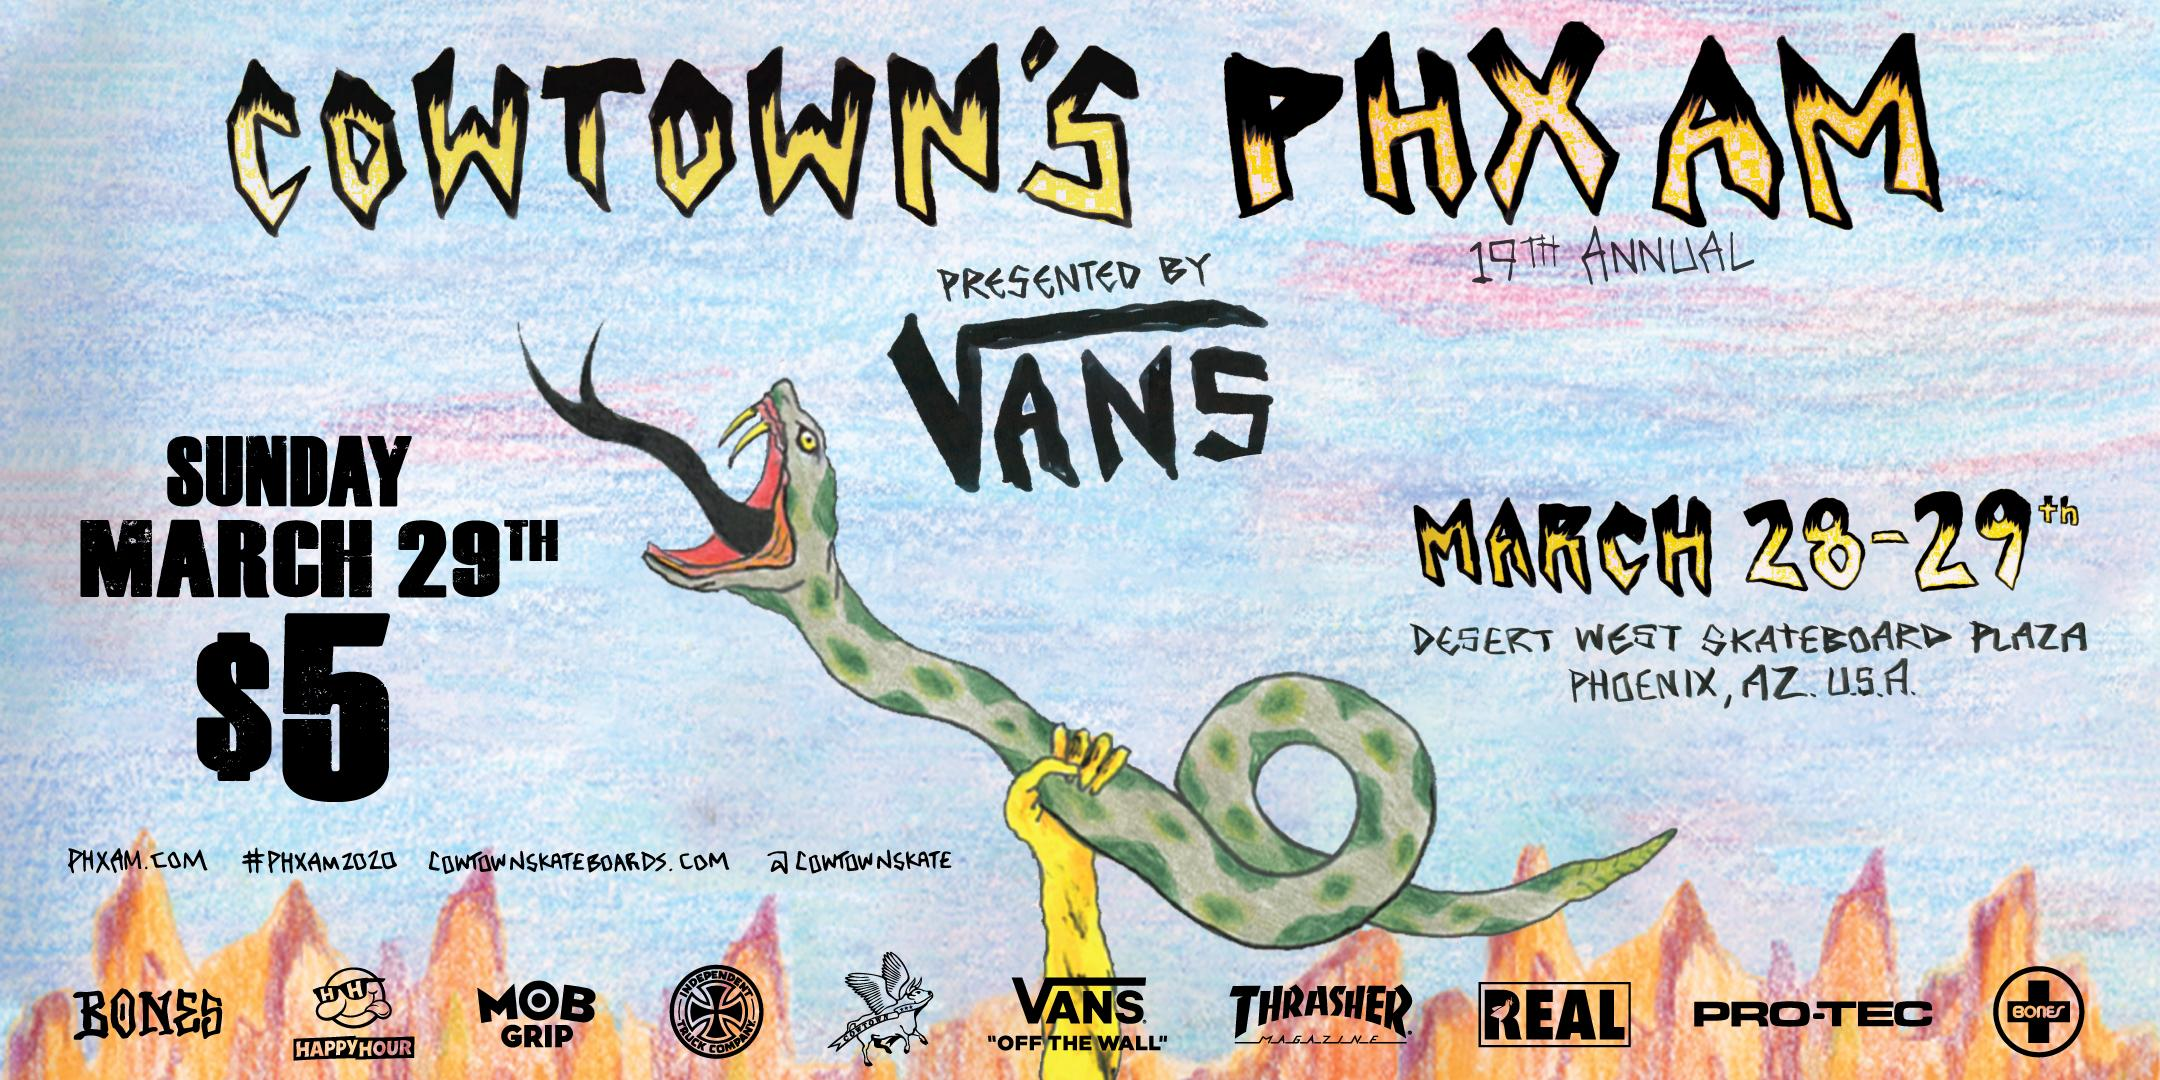 Cowtown's 19th Annual PHXAM - Qualifiers @ Desert West Skateboard Plaza